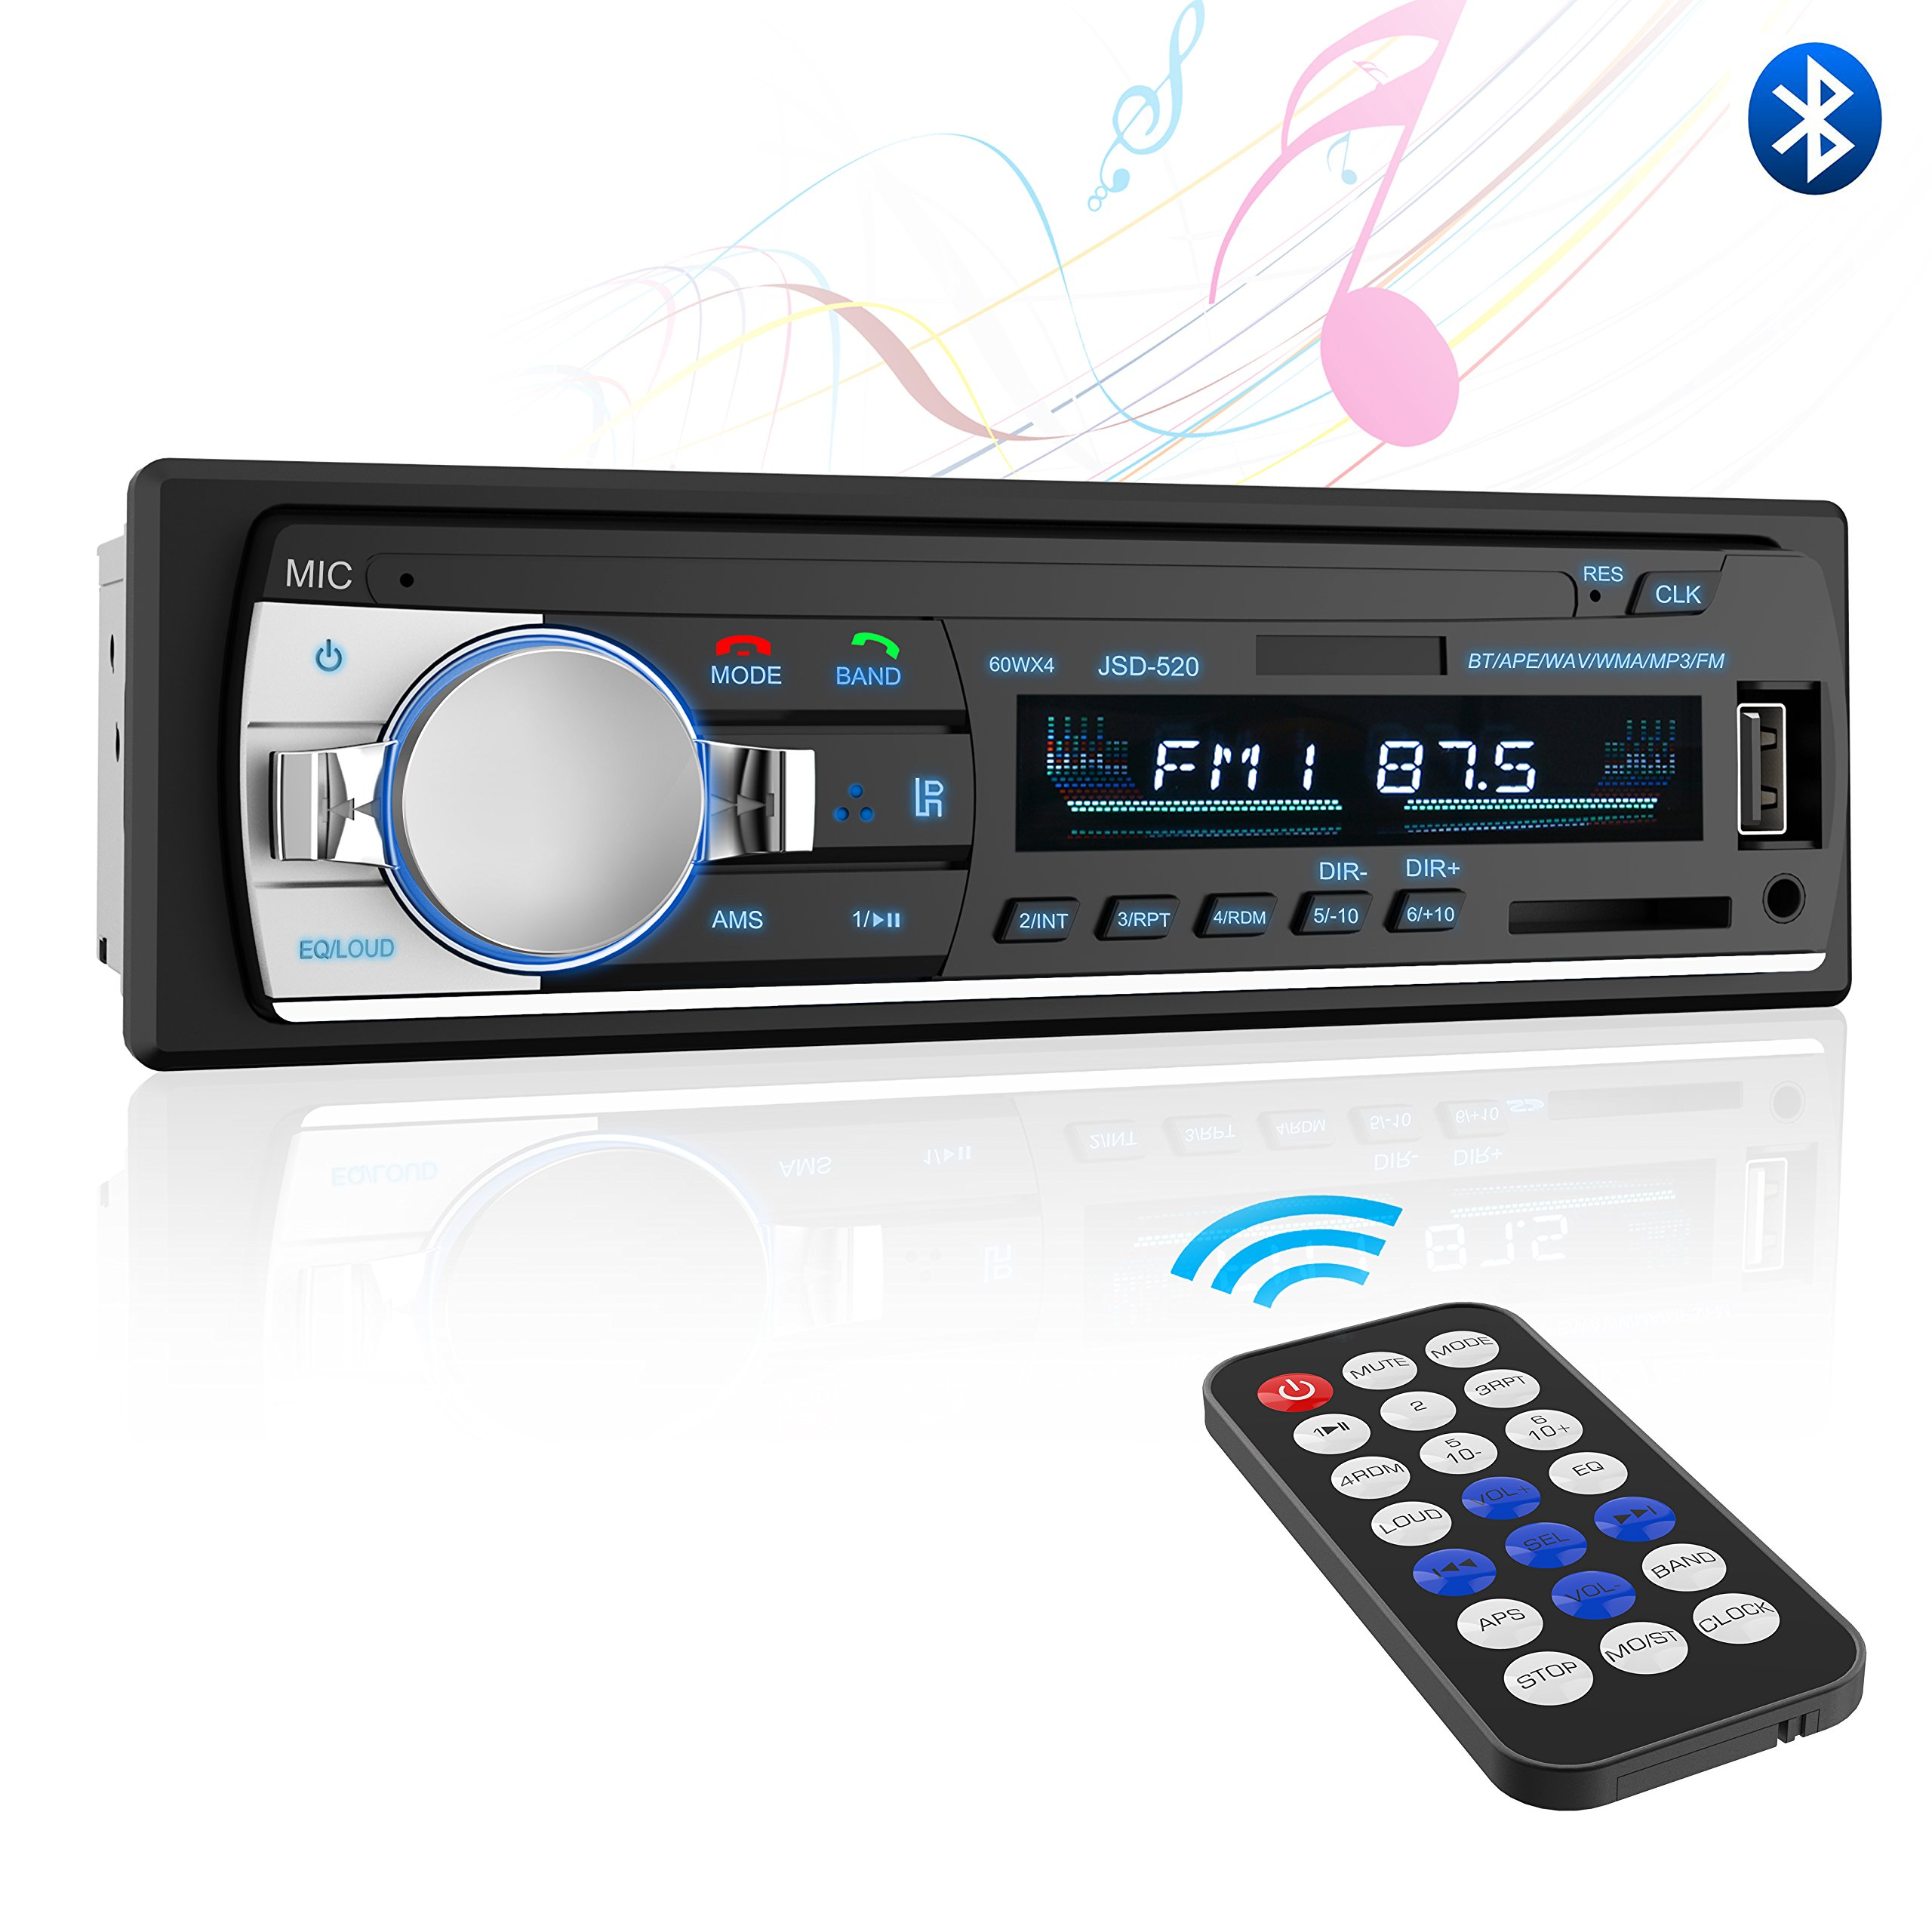 Bluetooth Car Stereo Reeiver,Valoin Universal Single Din Car Radio Receiver with FM Radio,Compact Car Audio Stereo with Remote Control Support MP3 Playback/USB/SD Card